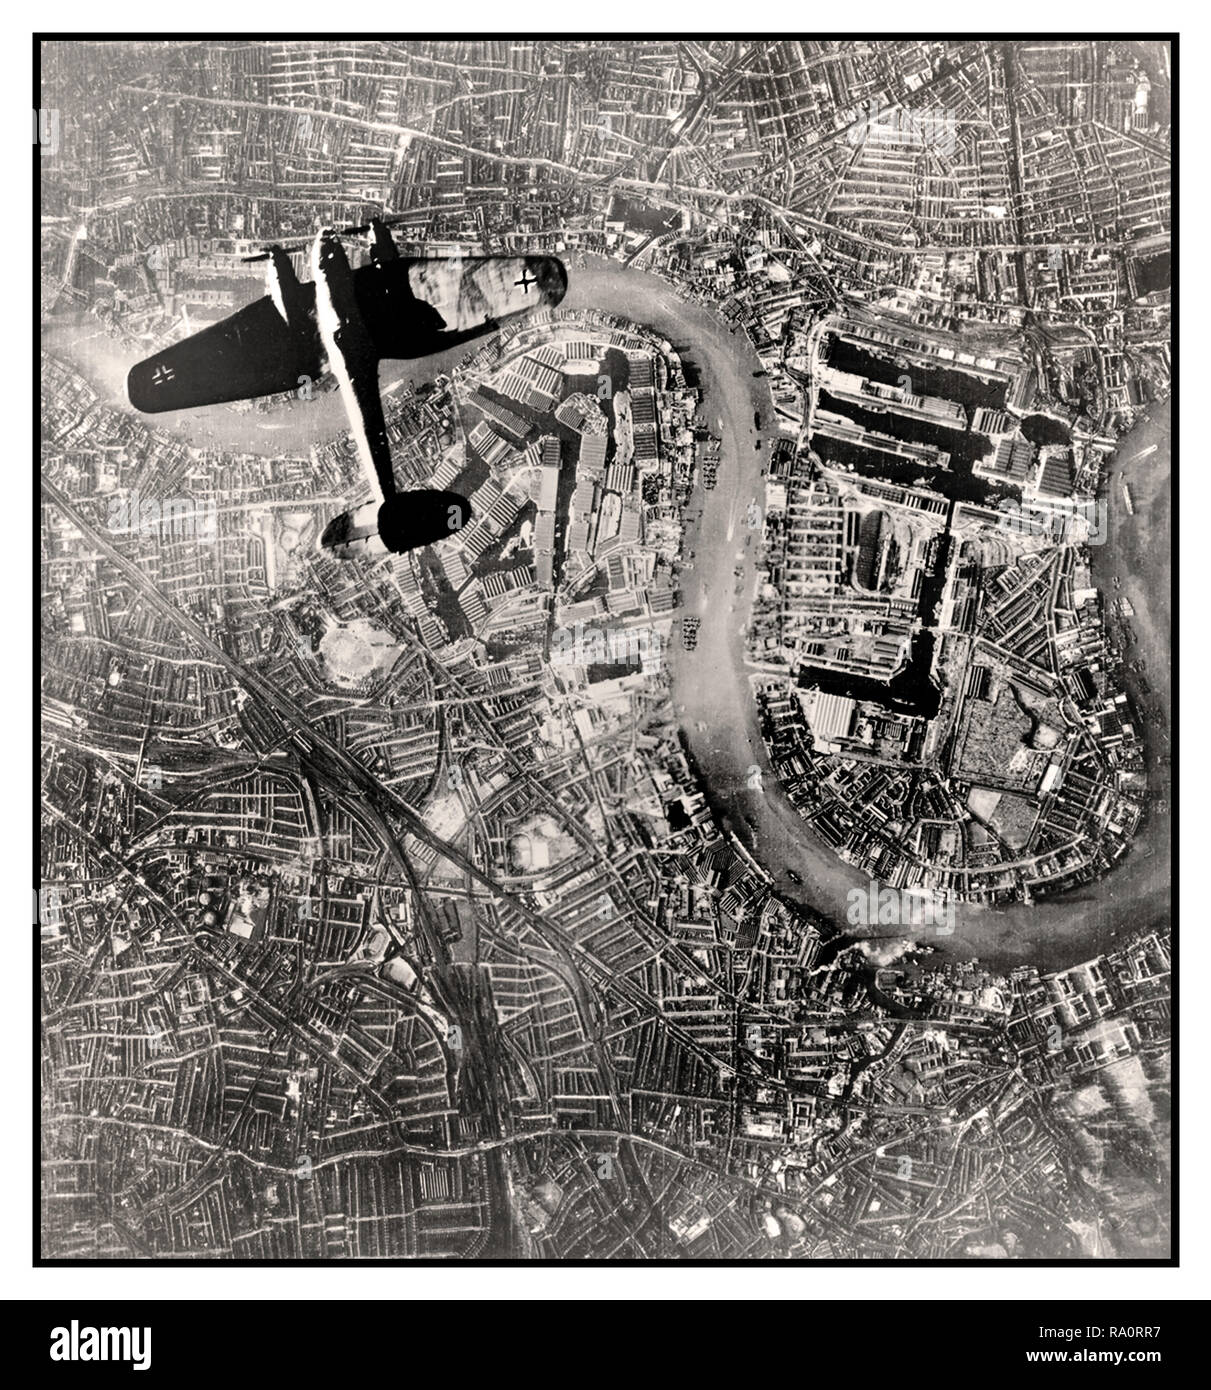 LONDON NAZI LUFTWAFFE BOMBER BLITZ Vintage WW2 aerial image of a Nazi Germany Luftwaffe Heinkel He111 bomber on a daylight bombing run flying over central London on 7 September 1940. This remarkable image taken by the Nazi Luftwaffe, was discovered post WW2 in a previously unseen archive of German aerial photographs. Visible directly below is a key target for the Luftwaffe, the industrial complex of the Royal Docks on The River Thames London - Stock Image